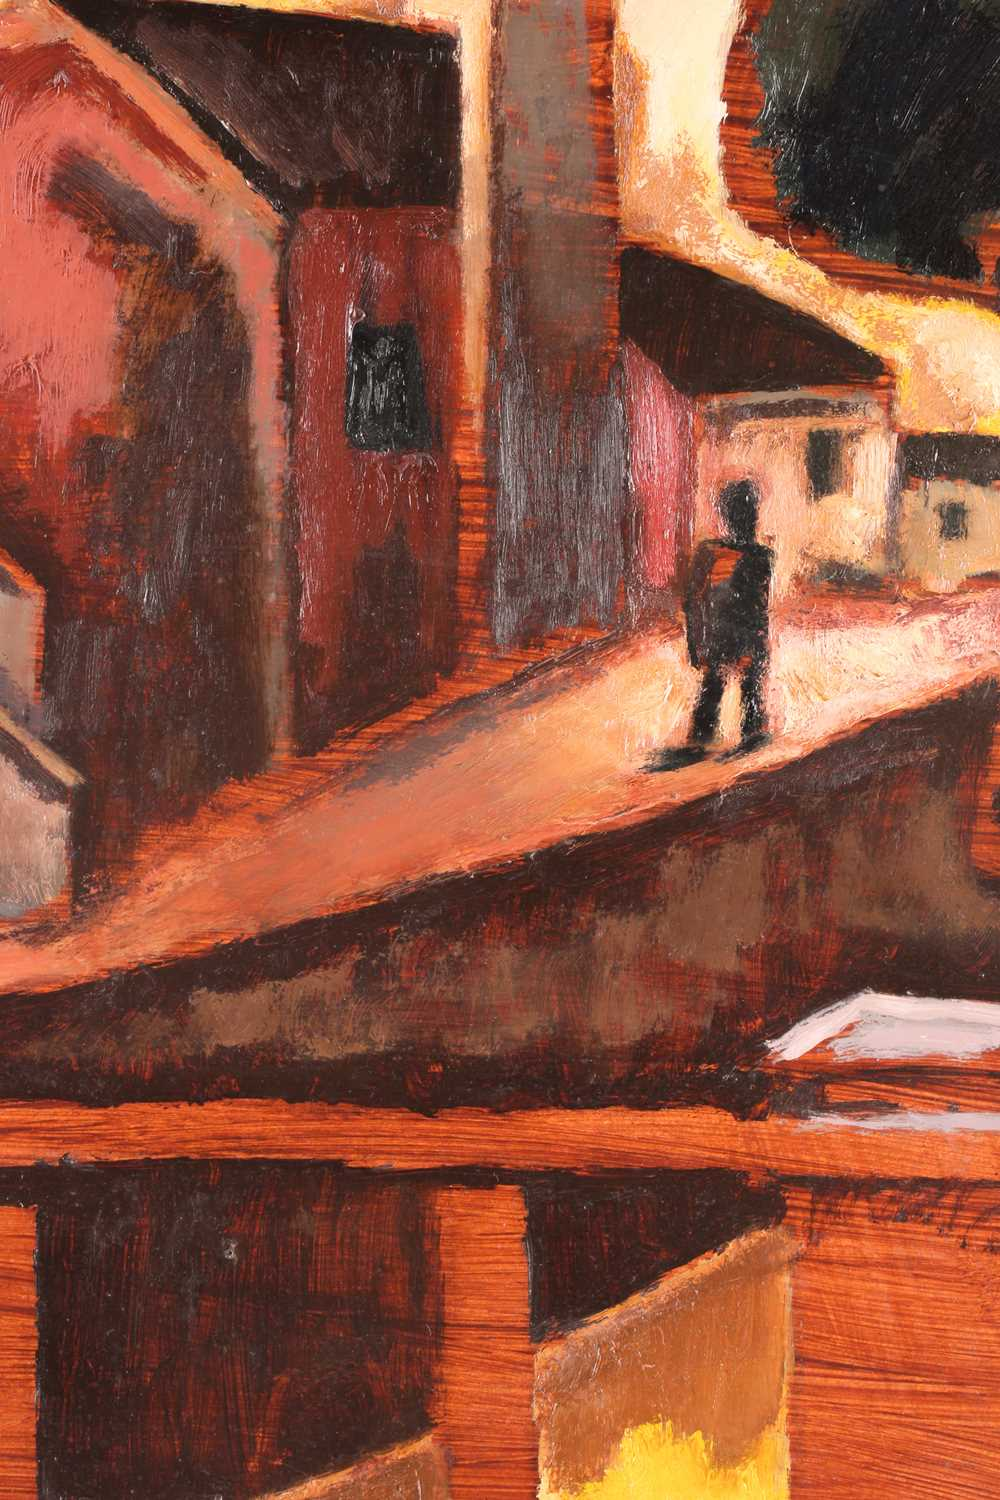 Josef Herman (1911-2000) Polish/British, 'The Little Street', 1953 (and later), a figure before - Image 6 of 6